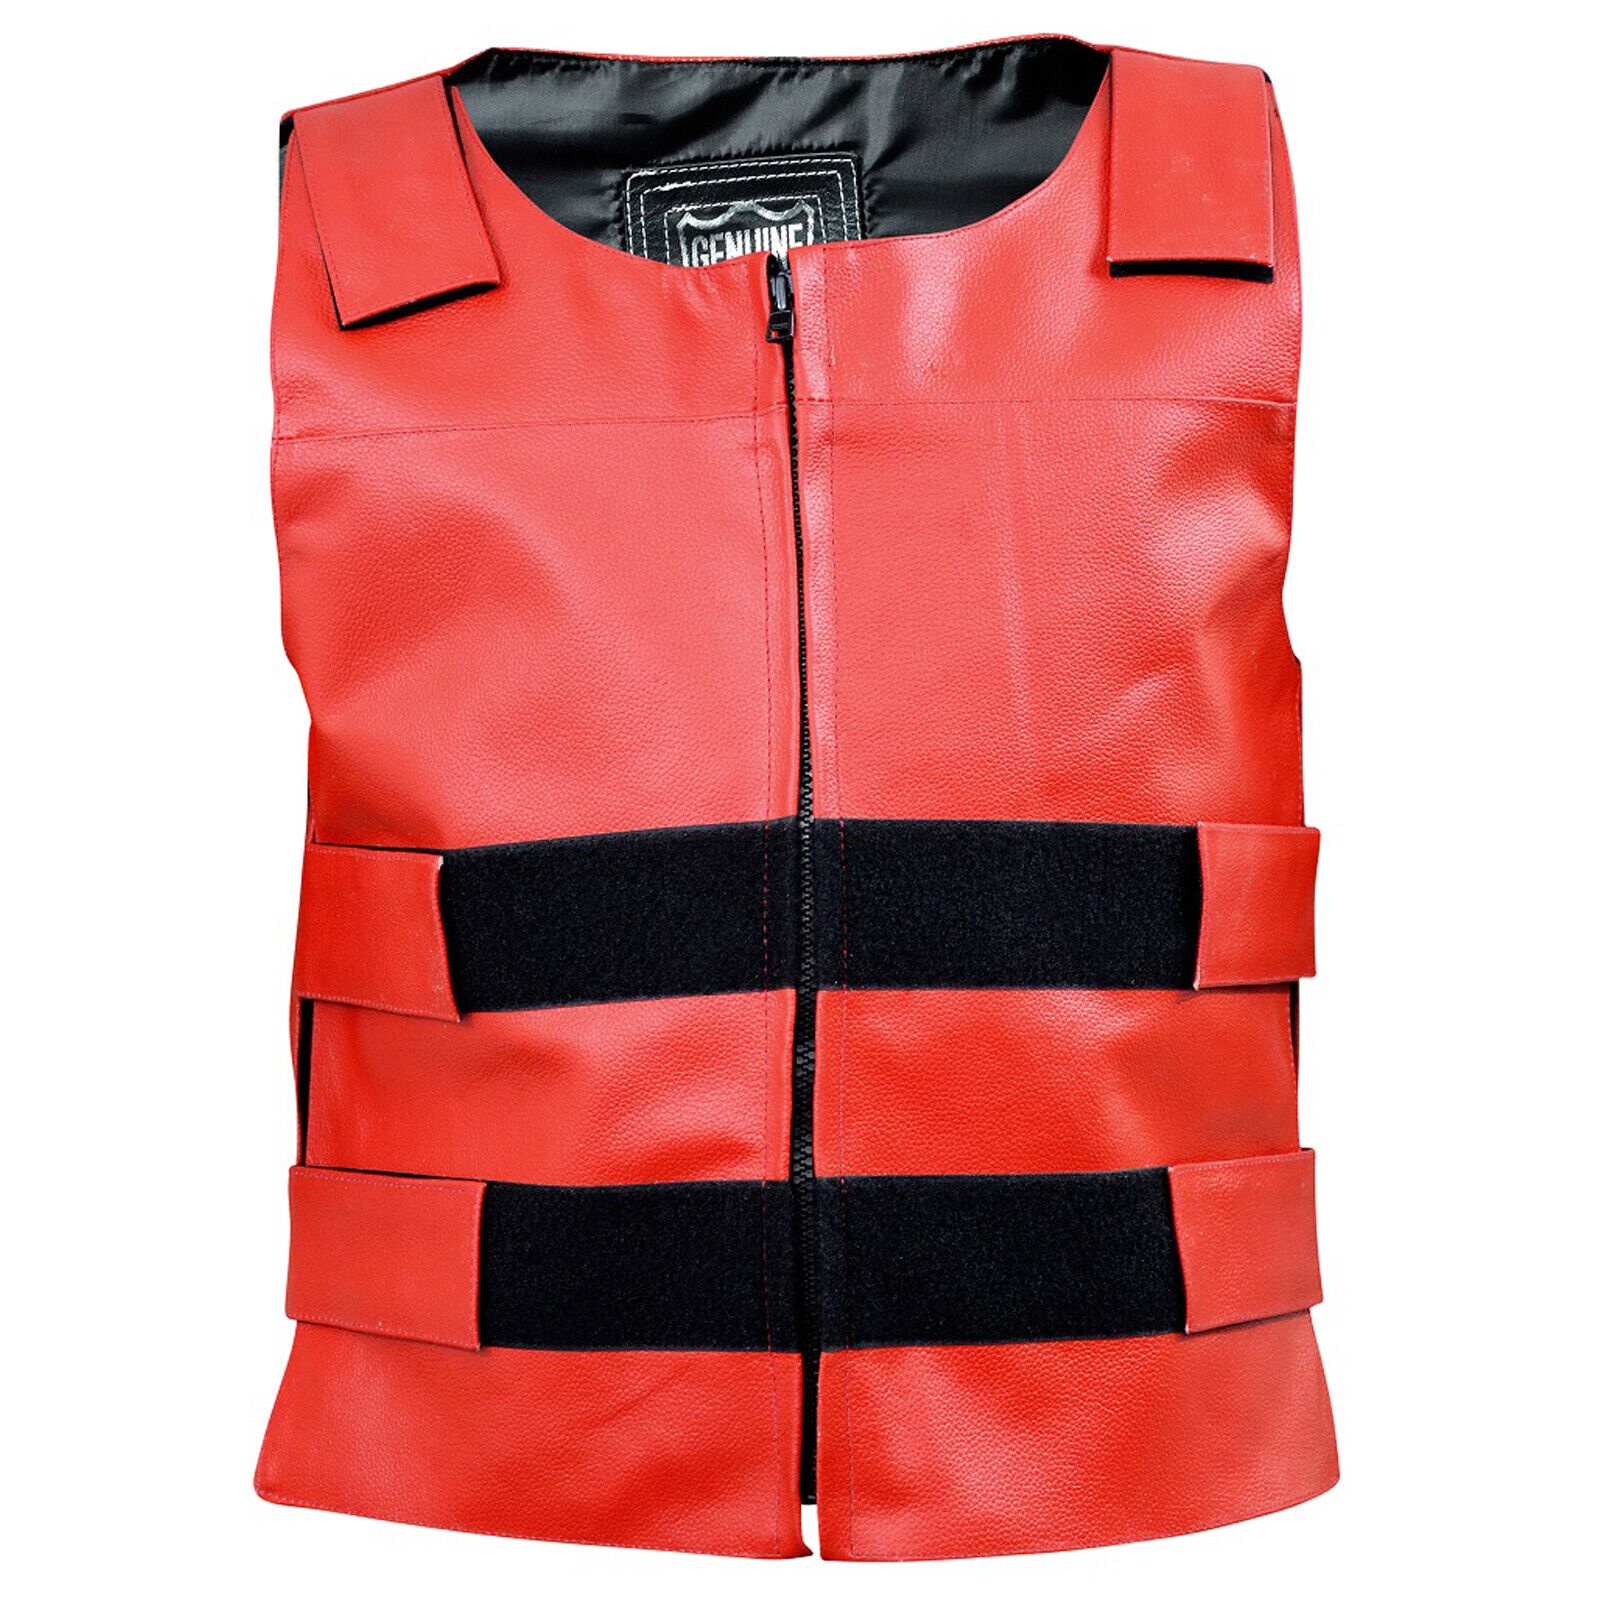 Women Bullet Proof style Motorcycle Vest in Real buffalo Leather for biker clubs